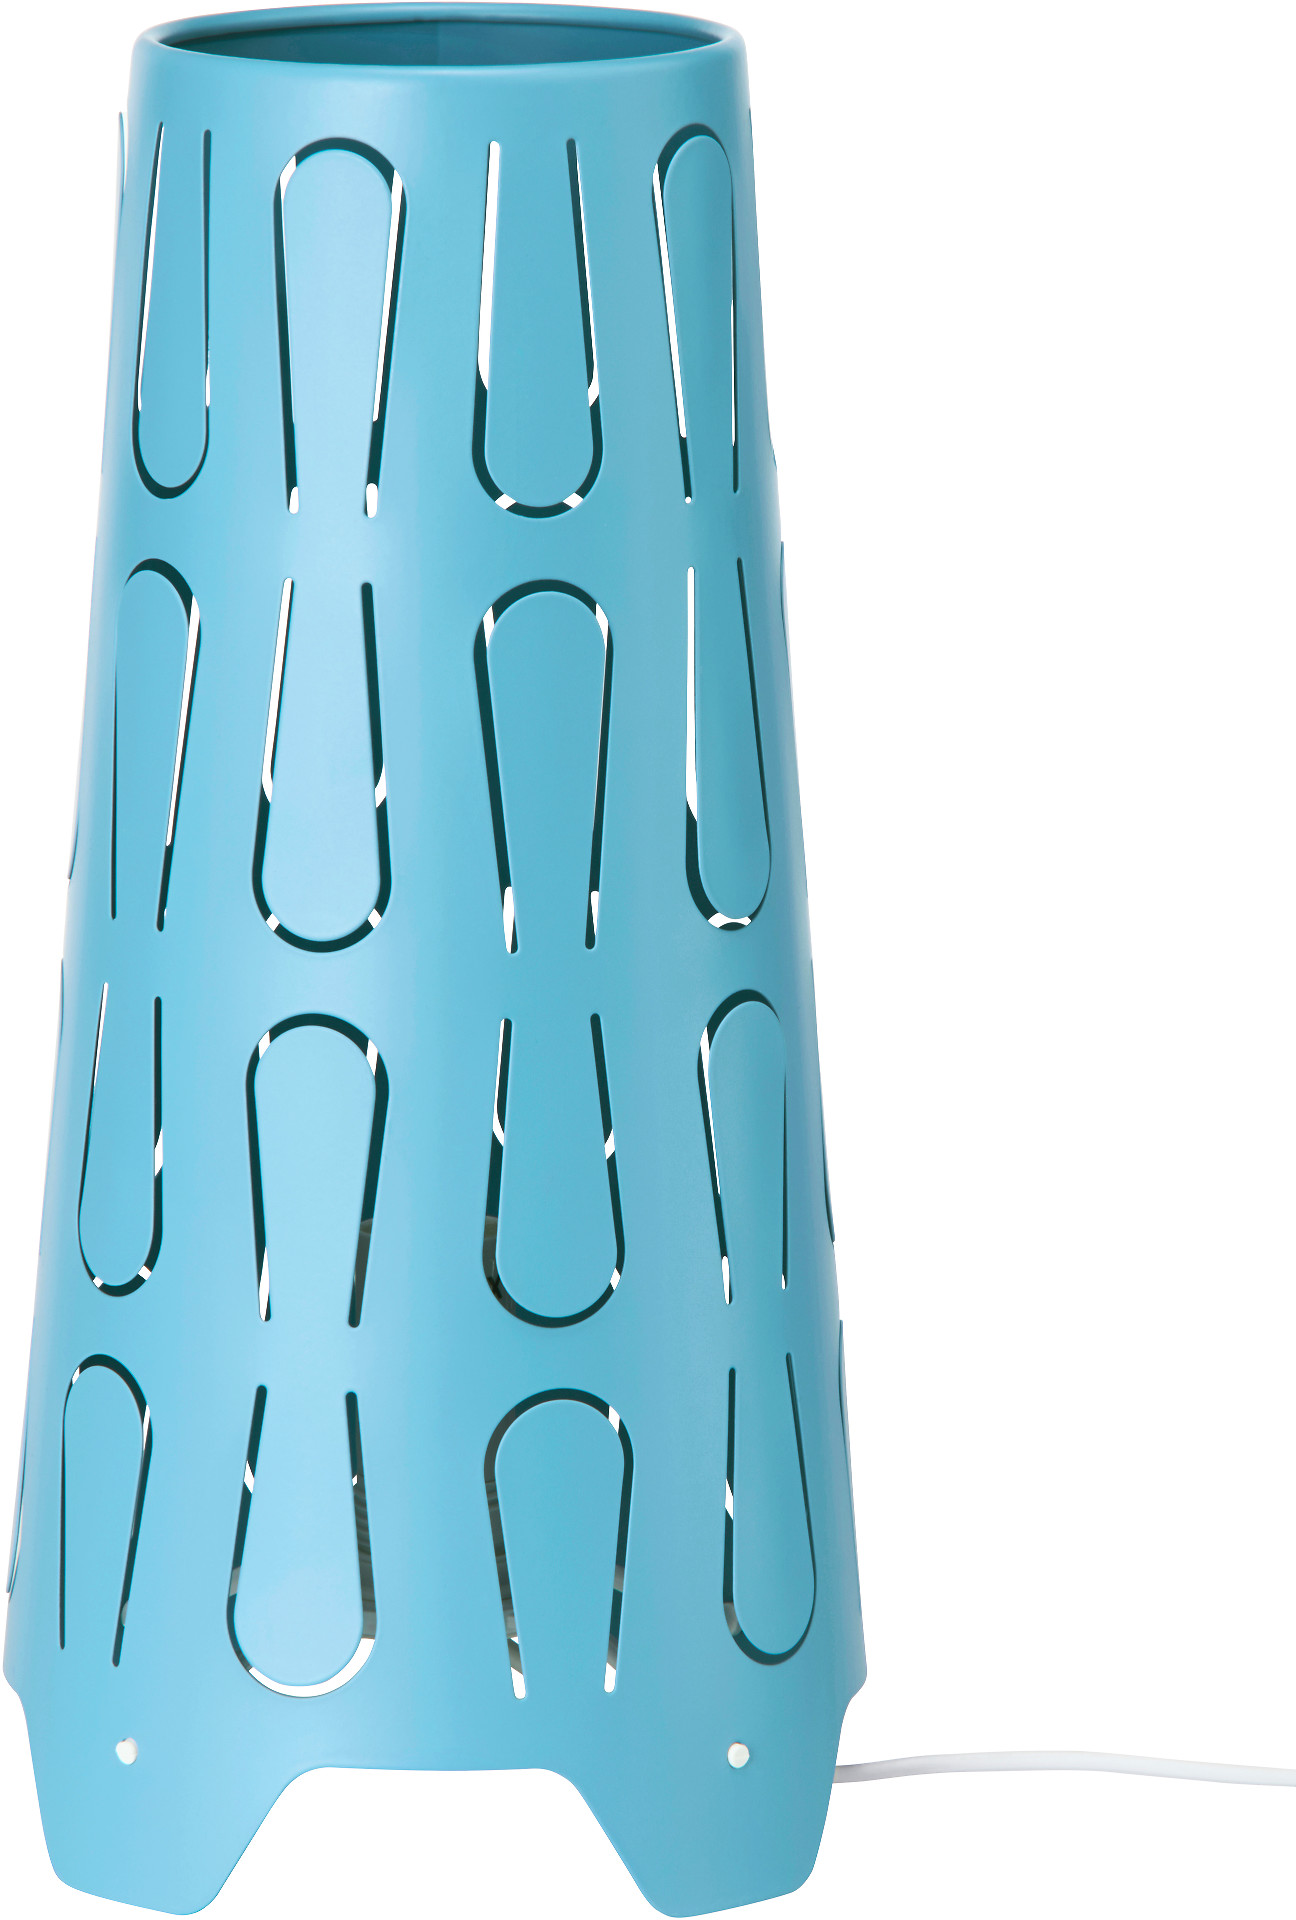 KAJUTA Table lamp - blue - IKEA